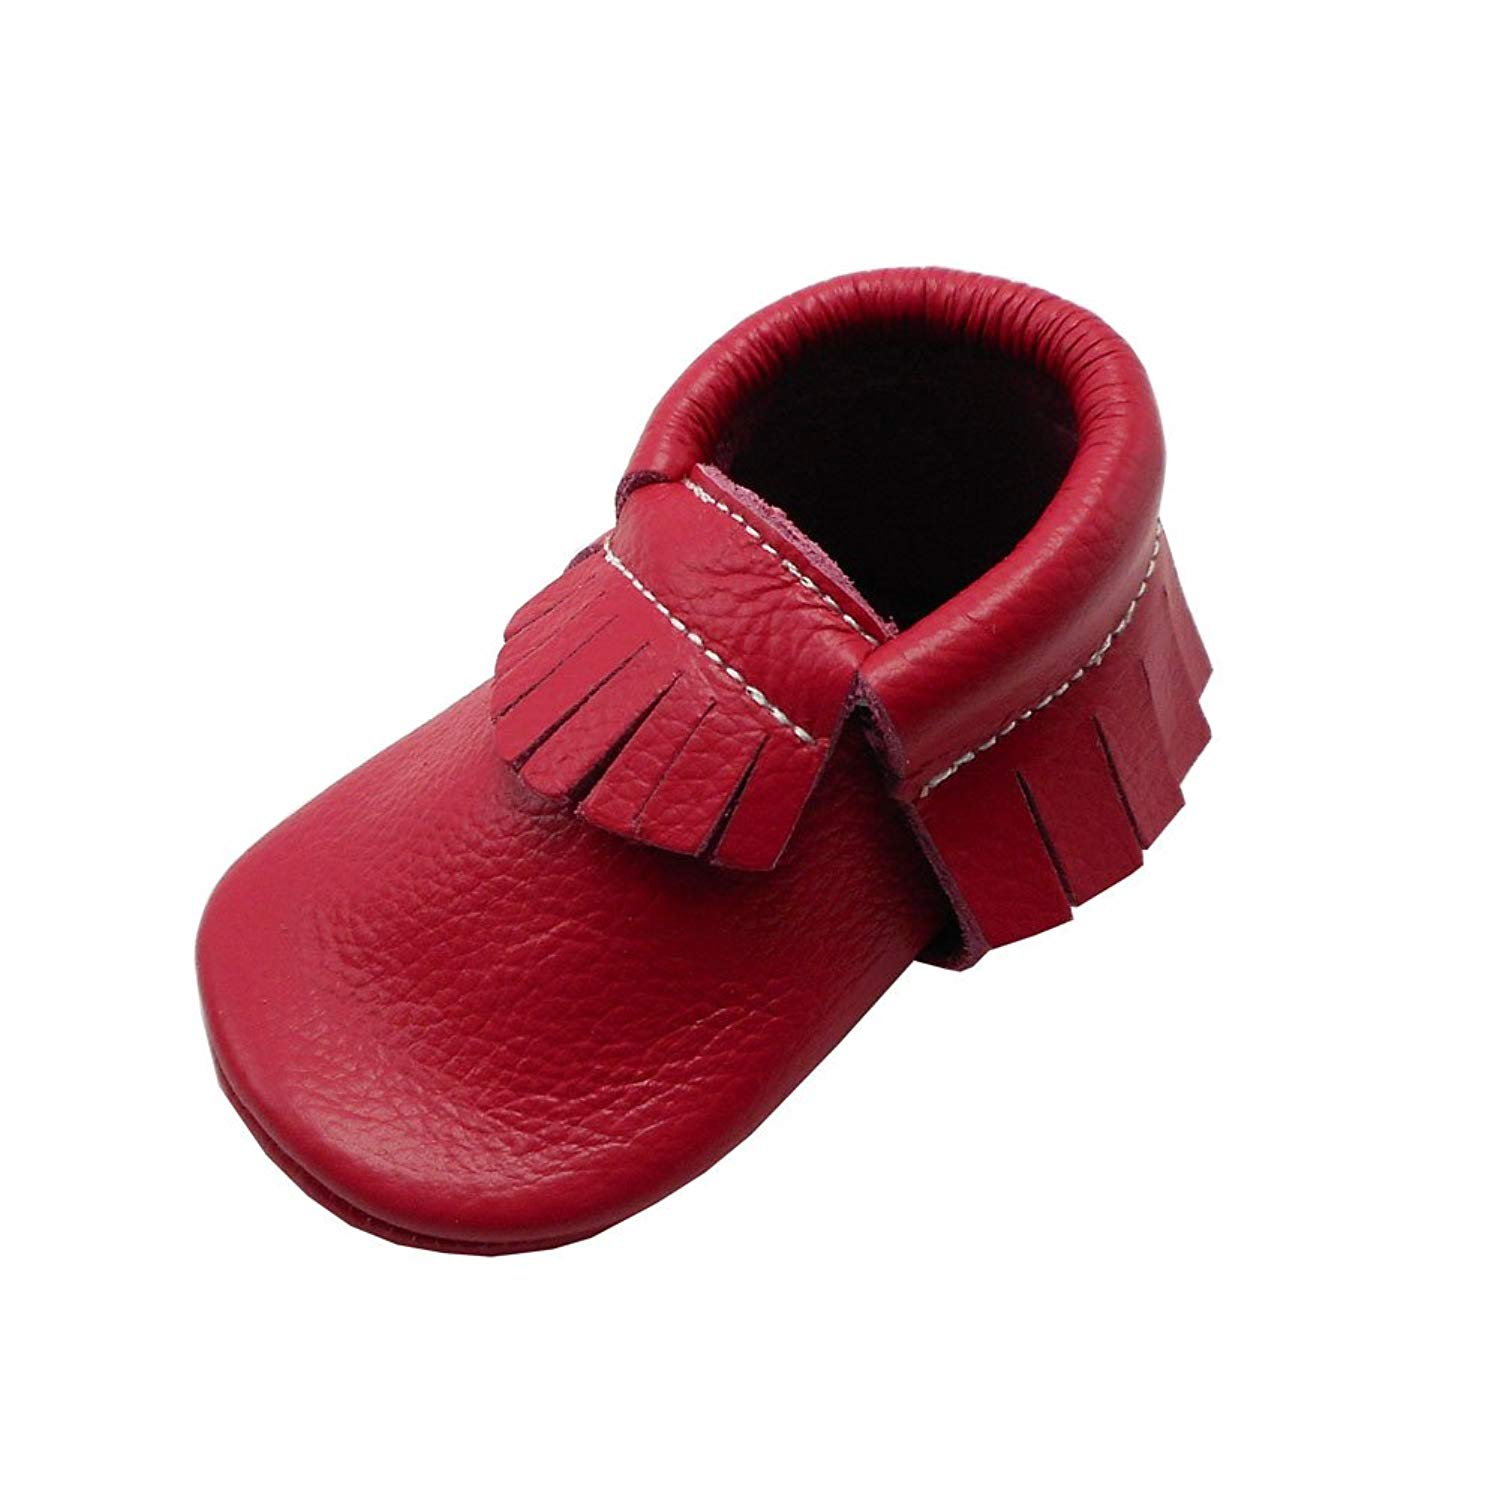 117363dee536 Get Quotations · YIHAKIDS Baby Tassel Shoes Soft Leather Sole Infant Shoes  Baby Moccasins Crib Shoes Rose Red(